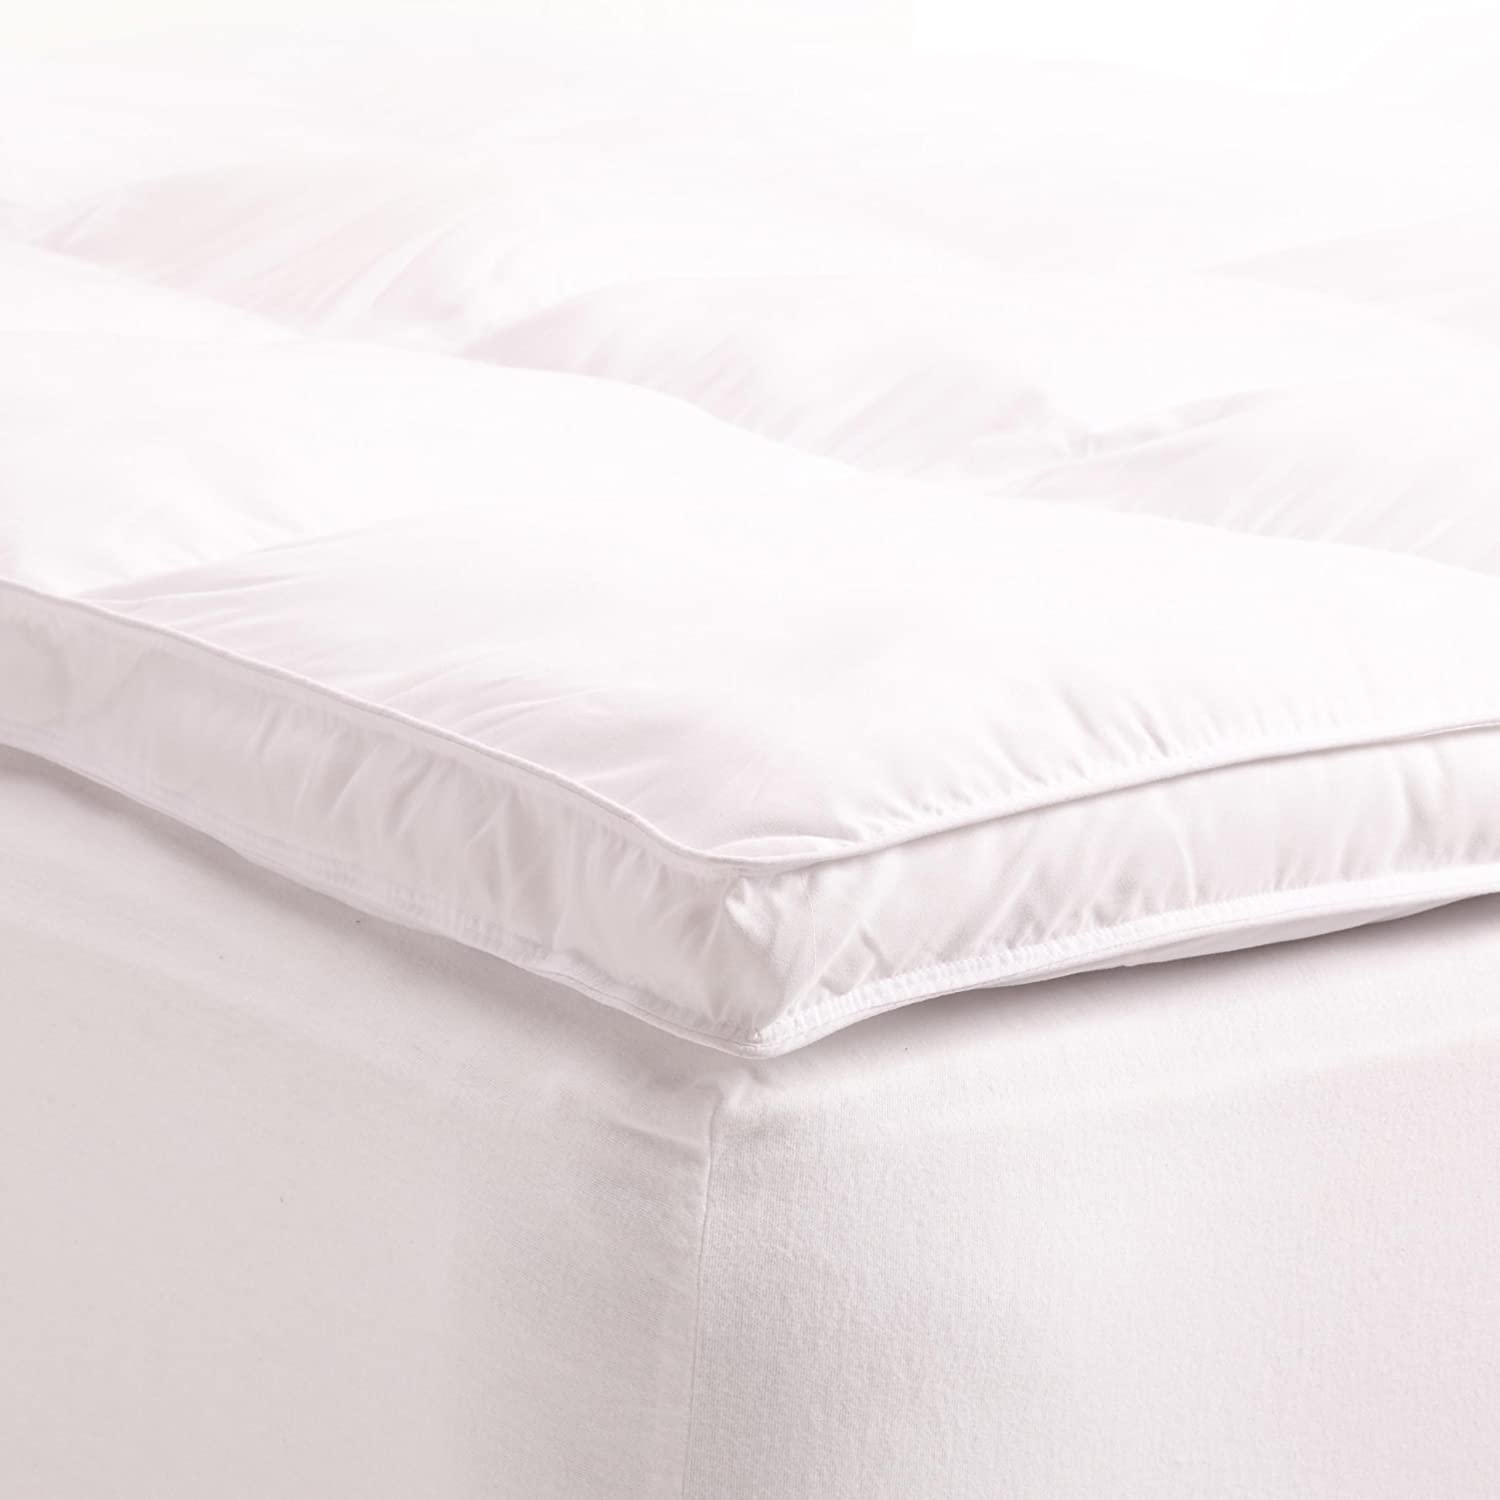 topper pillow queen bath full xl beyond bed mattress sealy size and memory pad amazon of twin mattresses foam top